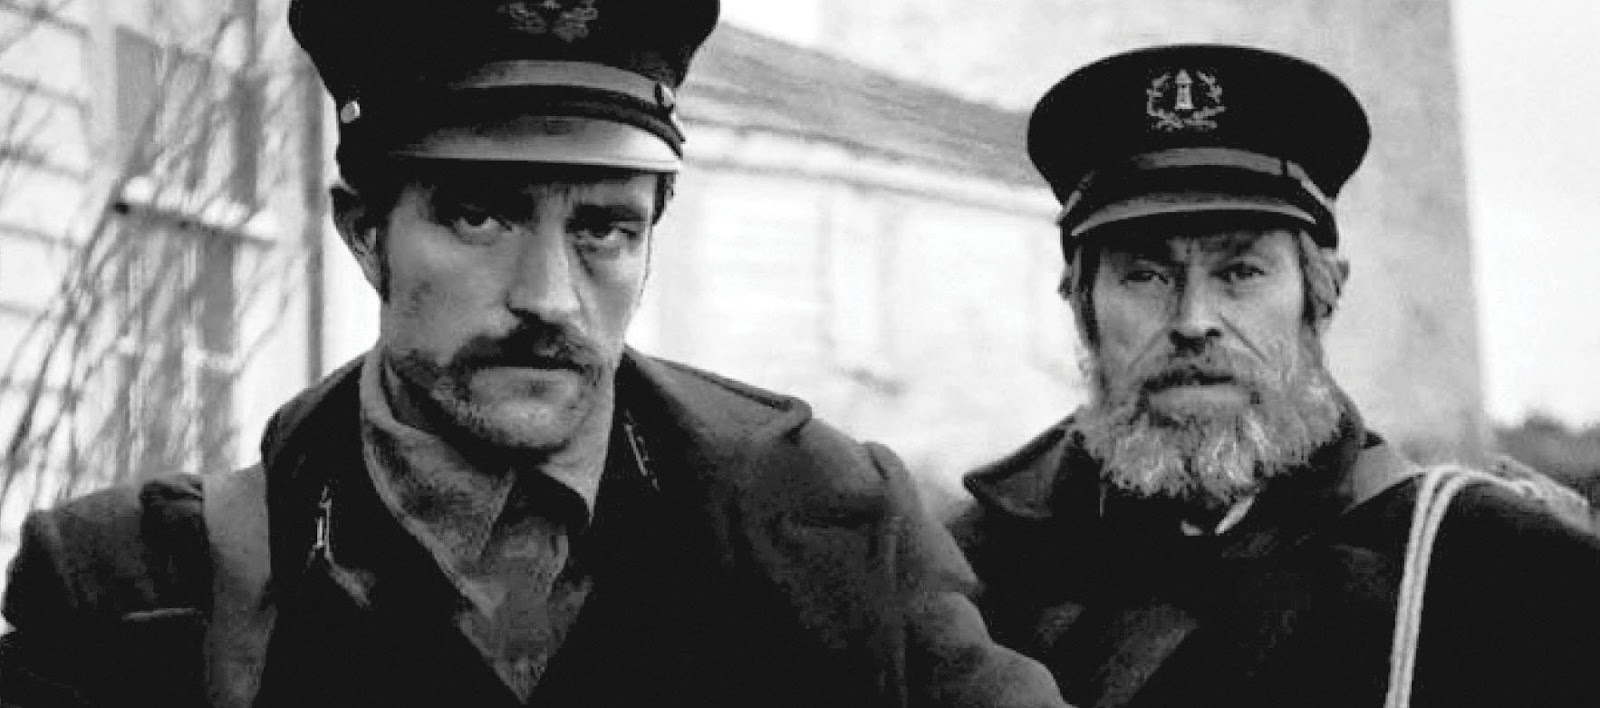 Robert Pattinson and Willem Dafoe as two lighthousemen in The Lighthouse